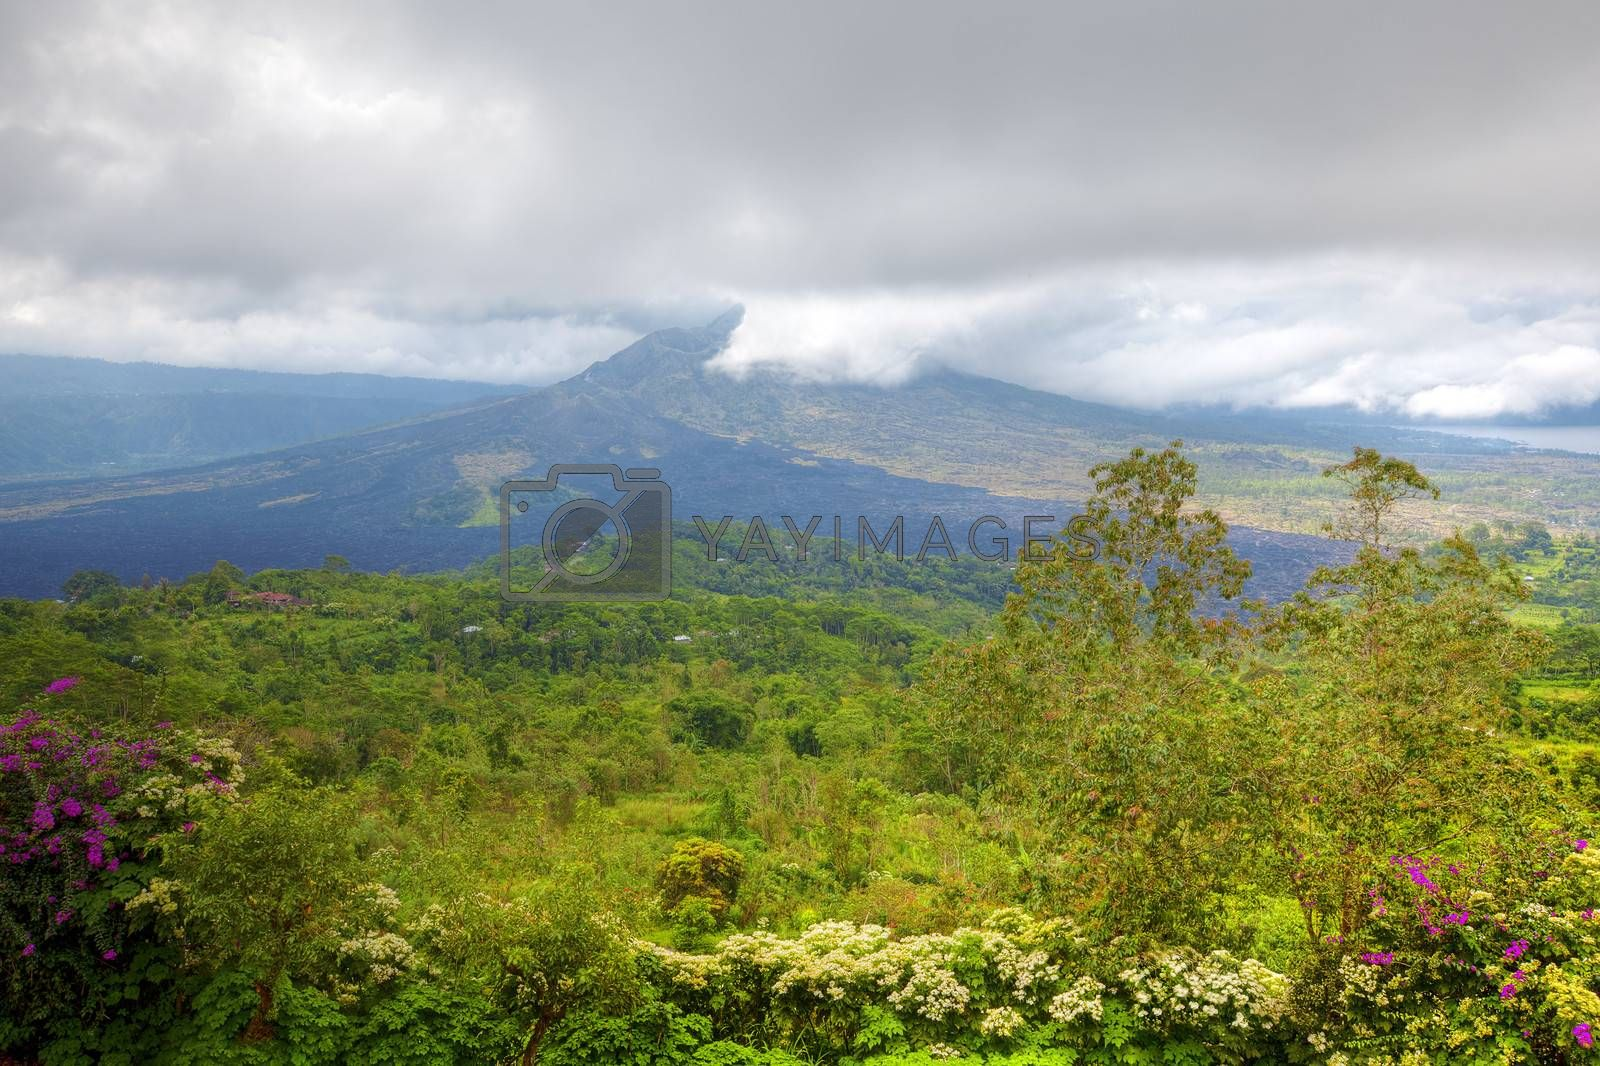 View of the still active Mount Batur in Bali